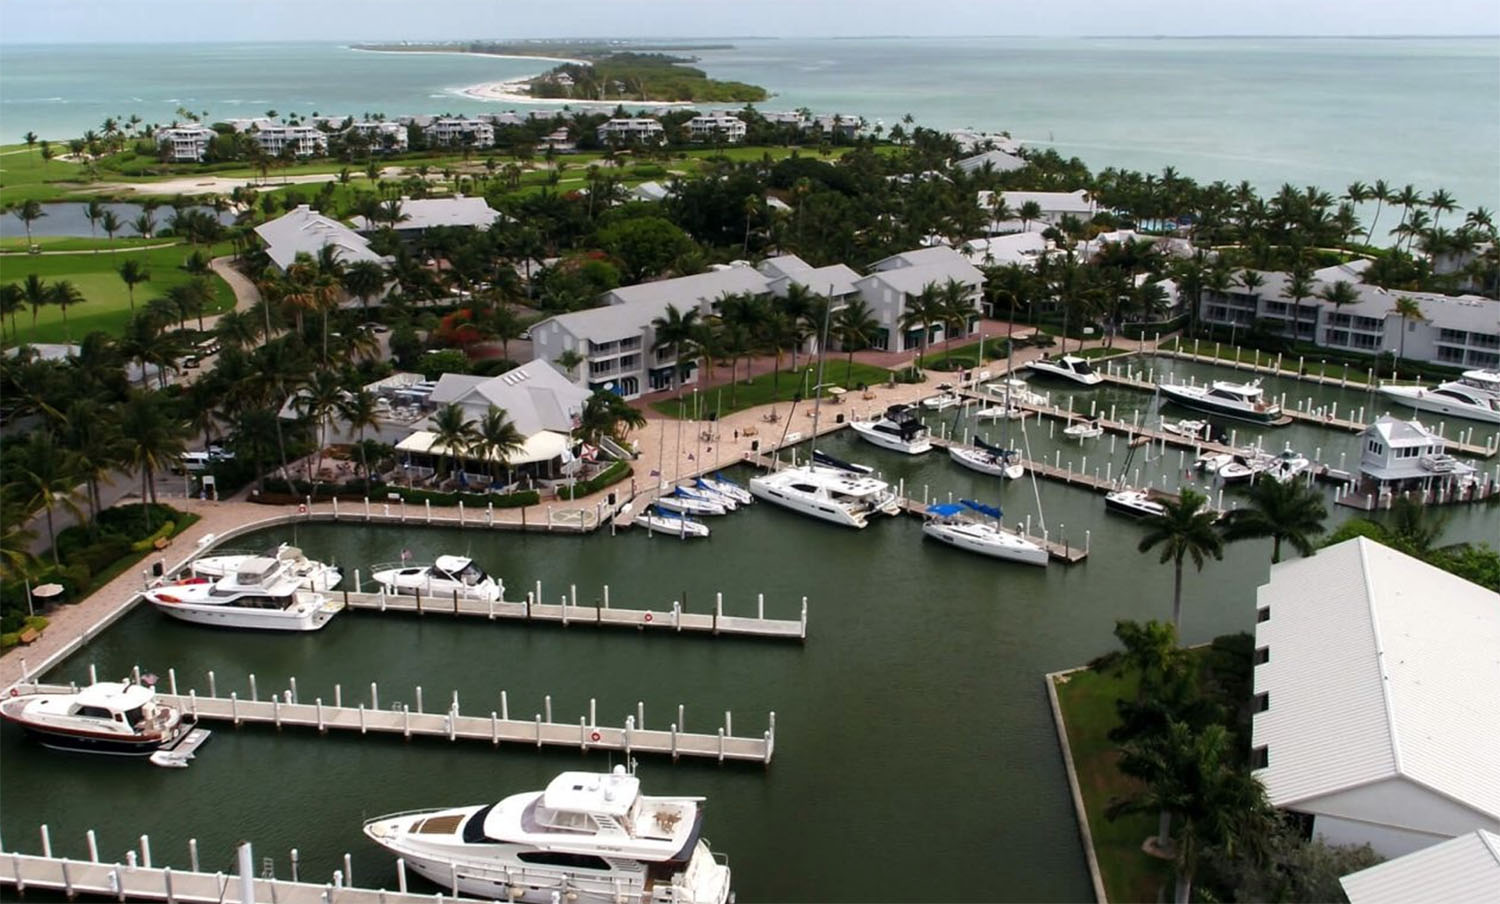 Image 1616: best marinas florida west coast